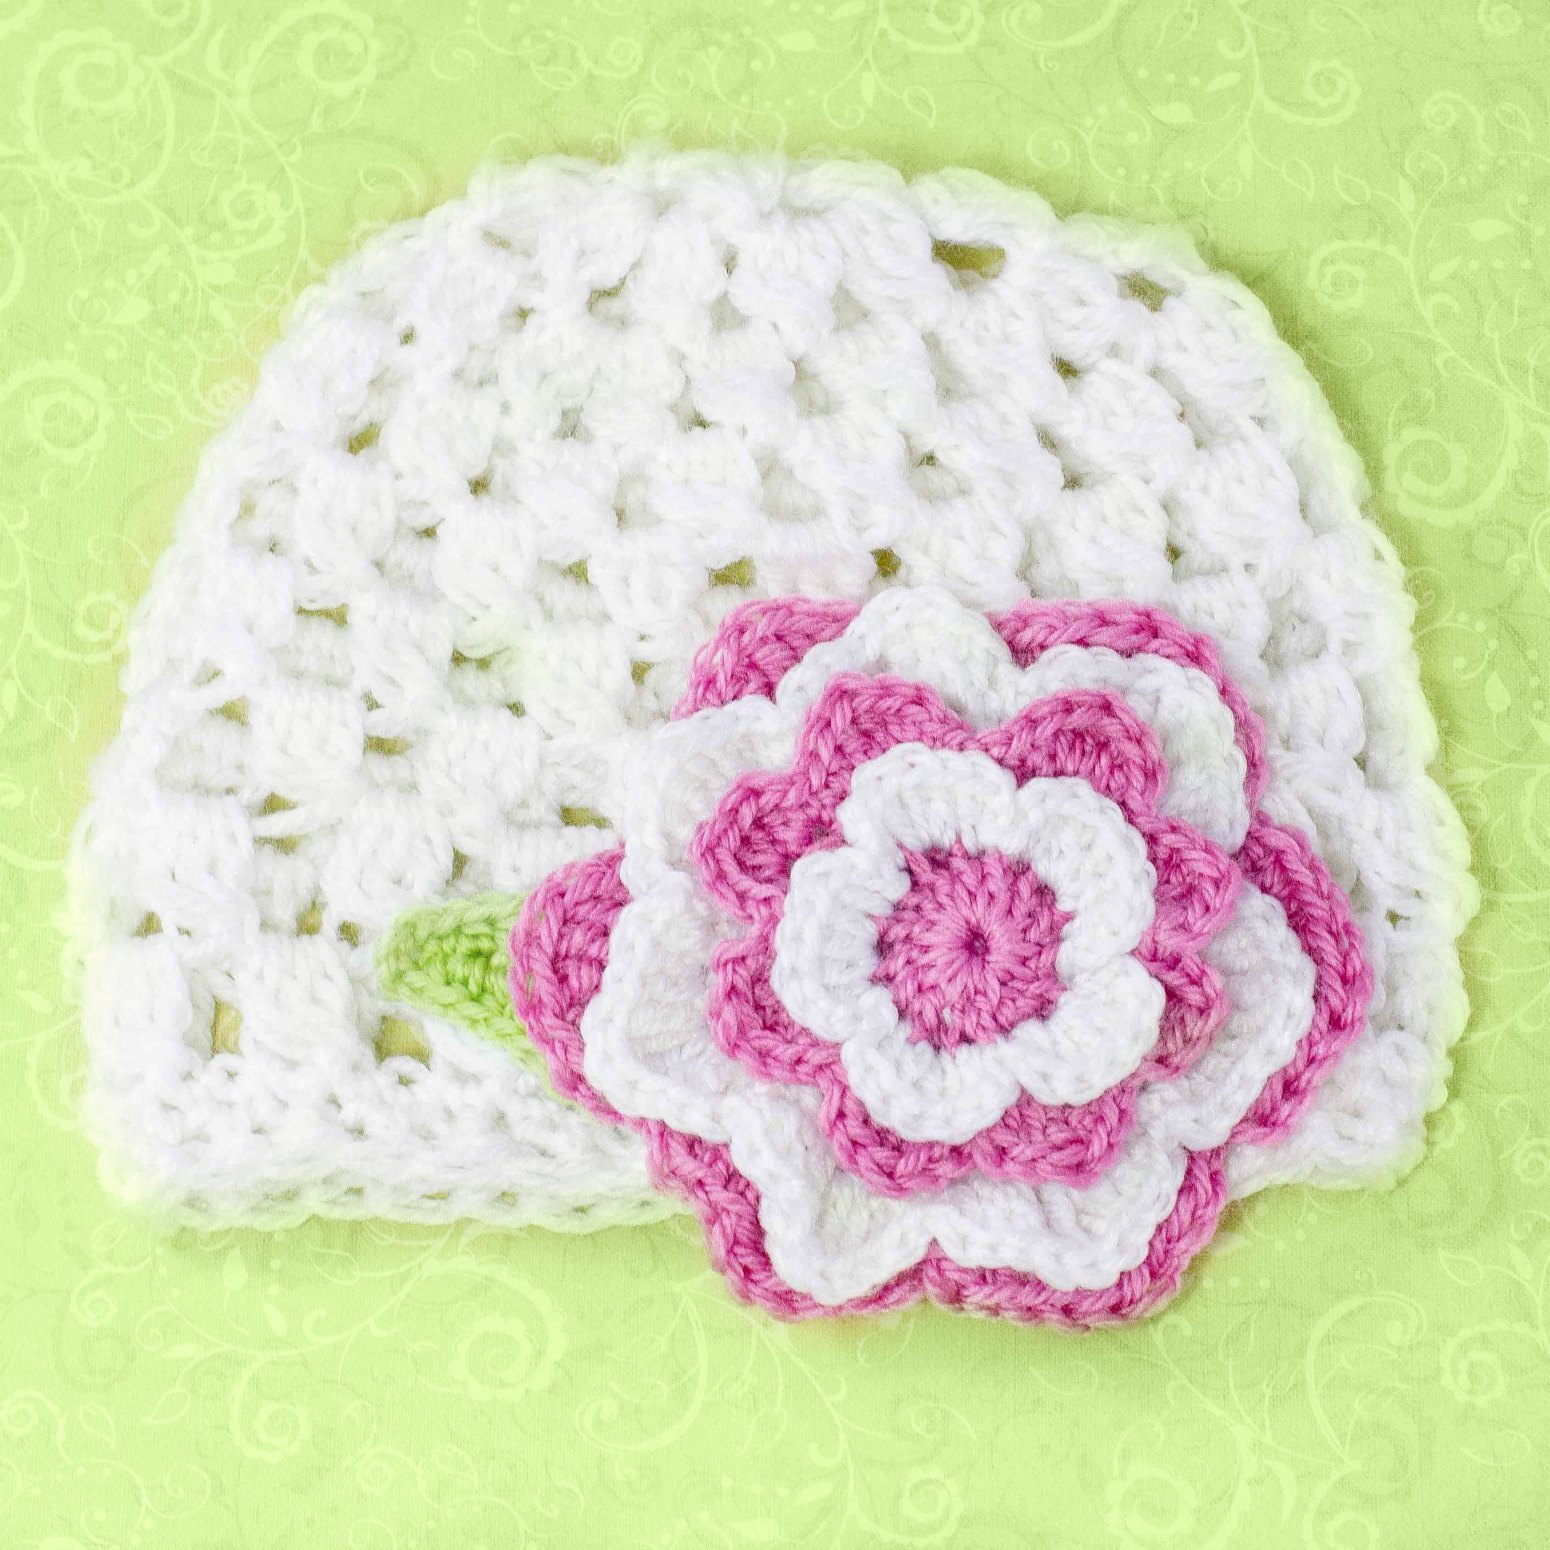 Free Crochet Flower Patterns For Baby Hats : Multi Layered Flower Pattern - Media - Crochet Me